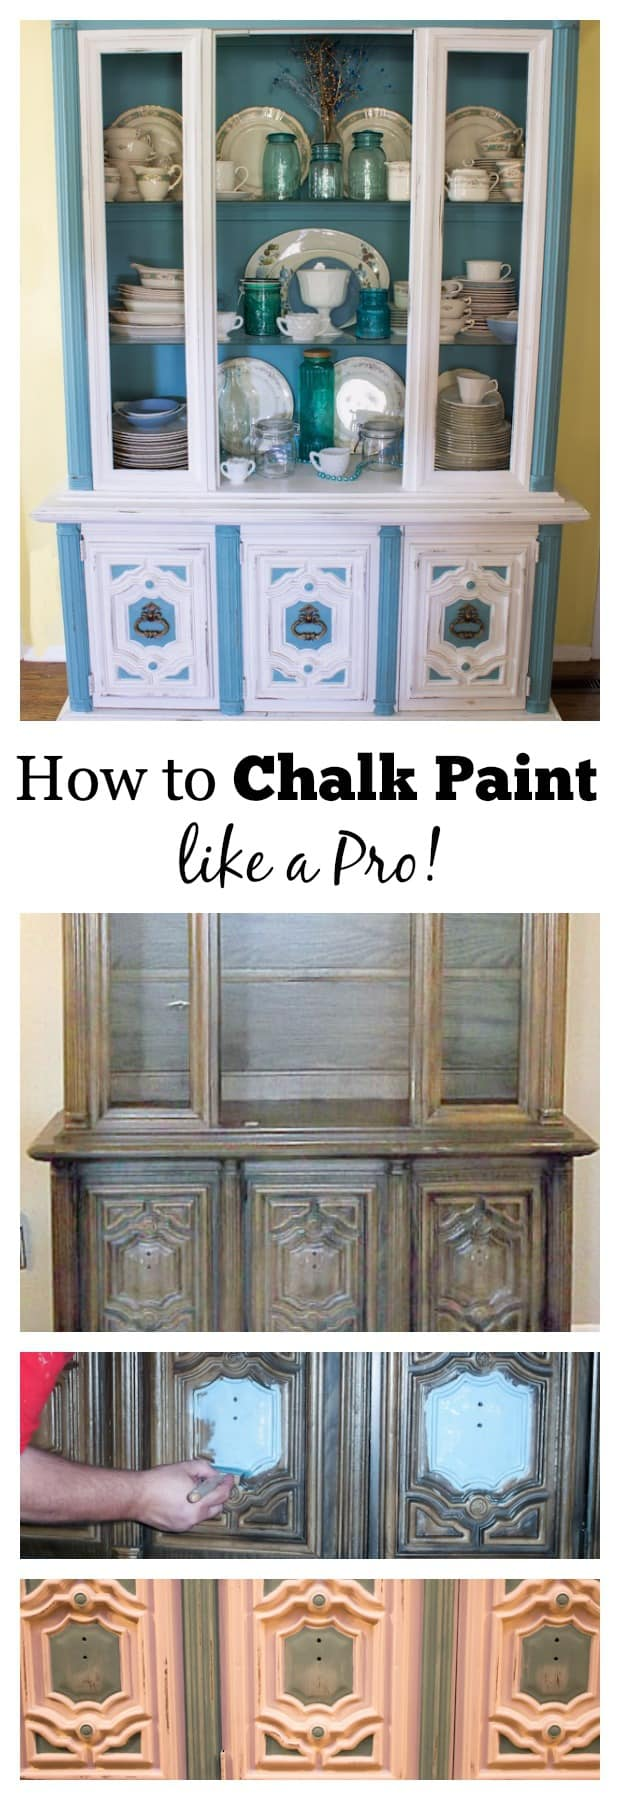 You don't have to be a professional painter to learn how to chalk paint! This china hutch makeover with Annie Sloan chalk paint is a shabby chic DIY! #anniesloanchalkpaint #chalkpaint #chalkpainting #howtochalkpaint #martysmusings